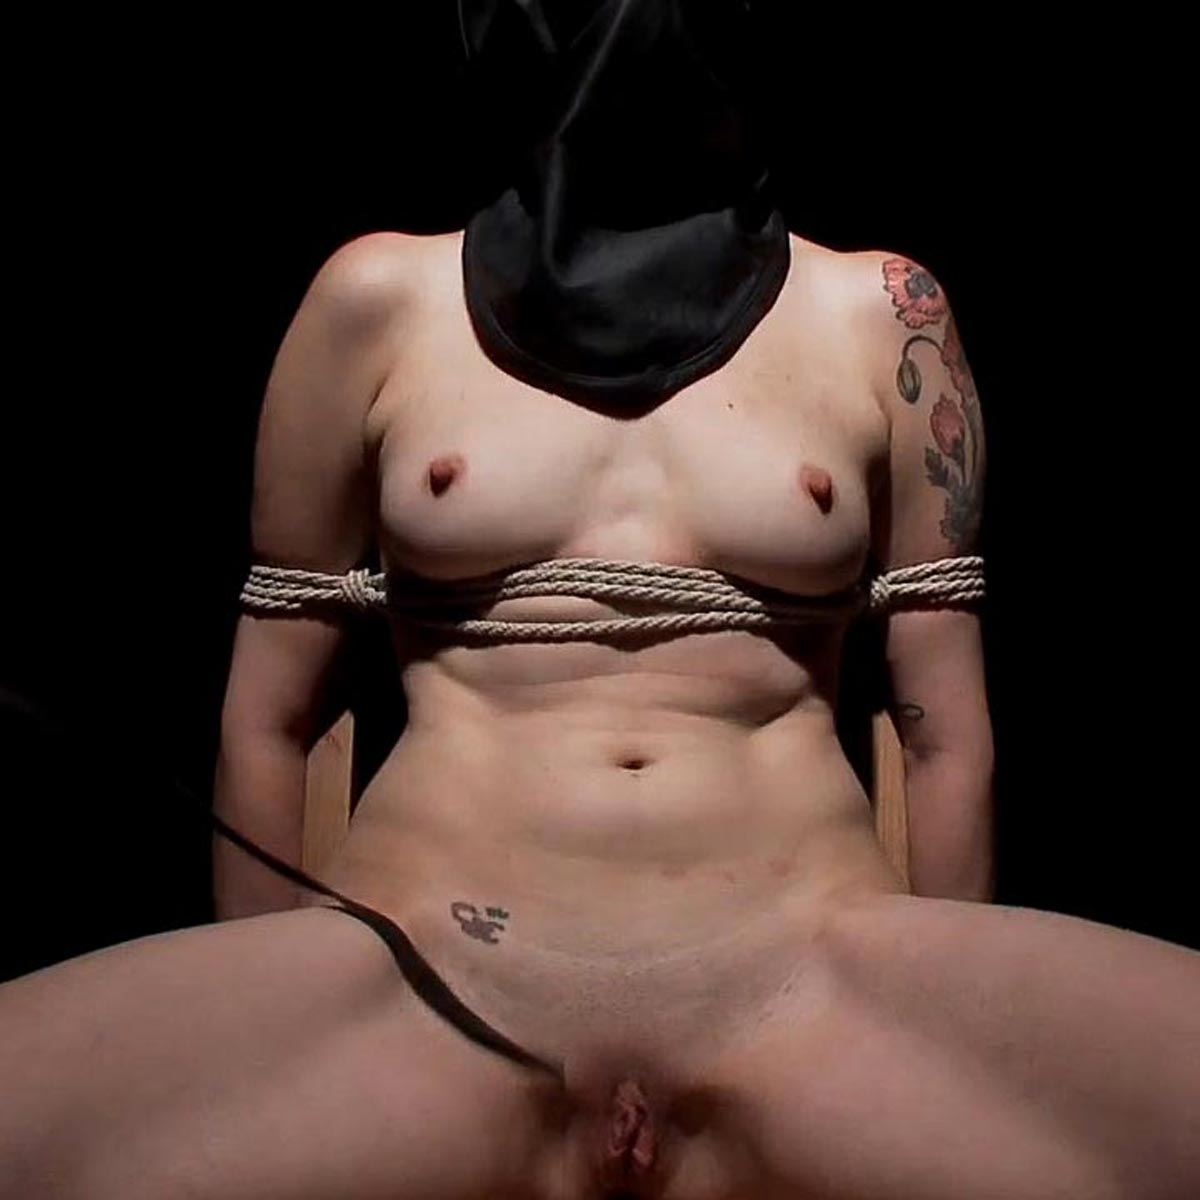 Kink Unlimited, sex-positive BDSM, Fetish, Bondage, Gangbang, Anal sex and Shemale videos. Demystifying and celebrating alternative sexuality by providing the most authentic kinky videos. Experience the other side of porn.